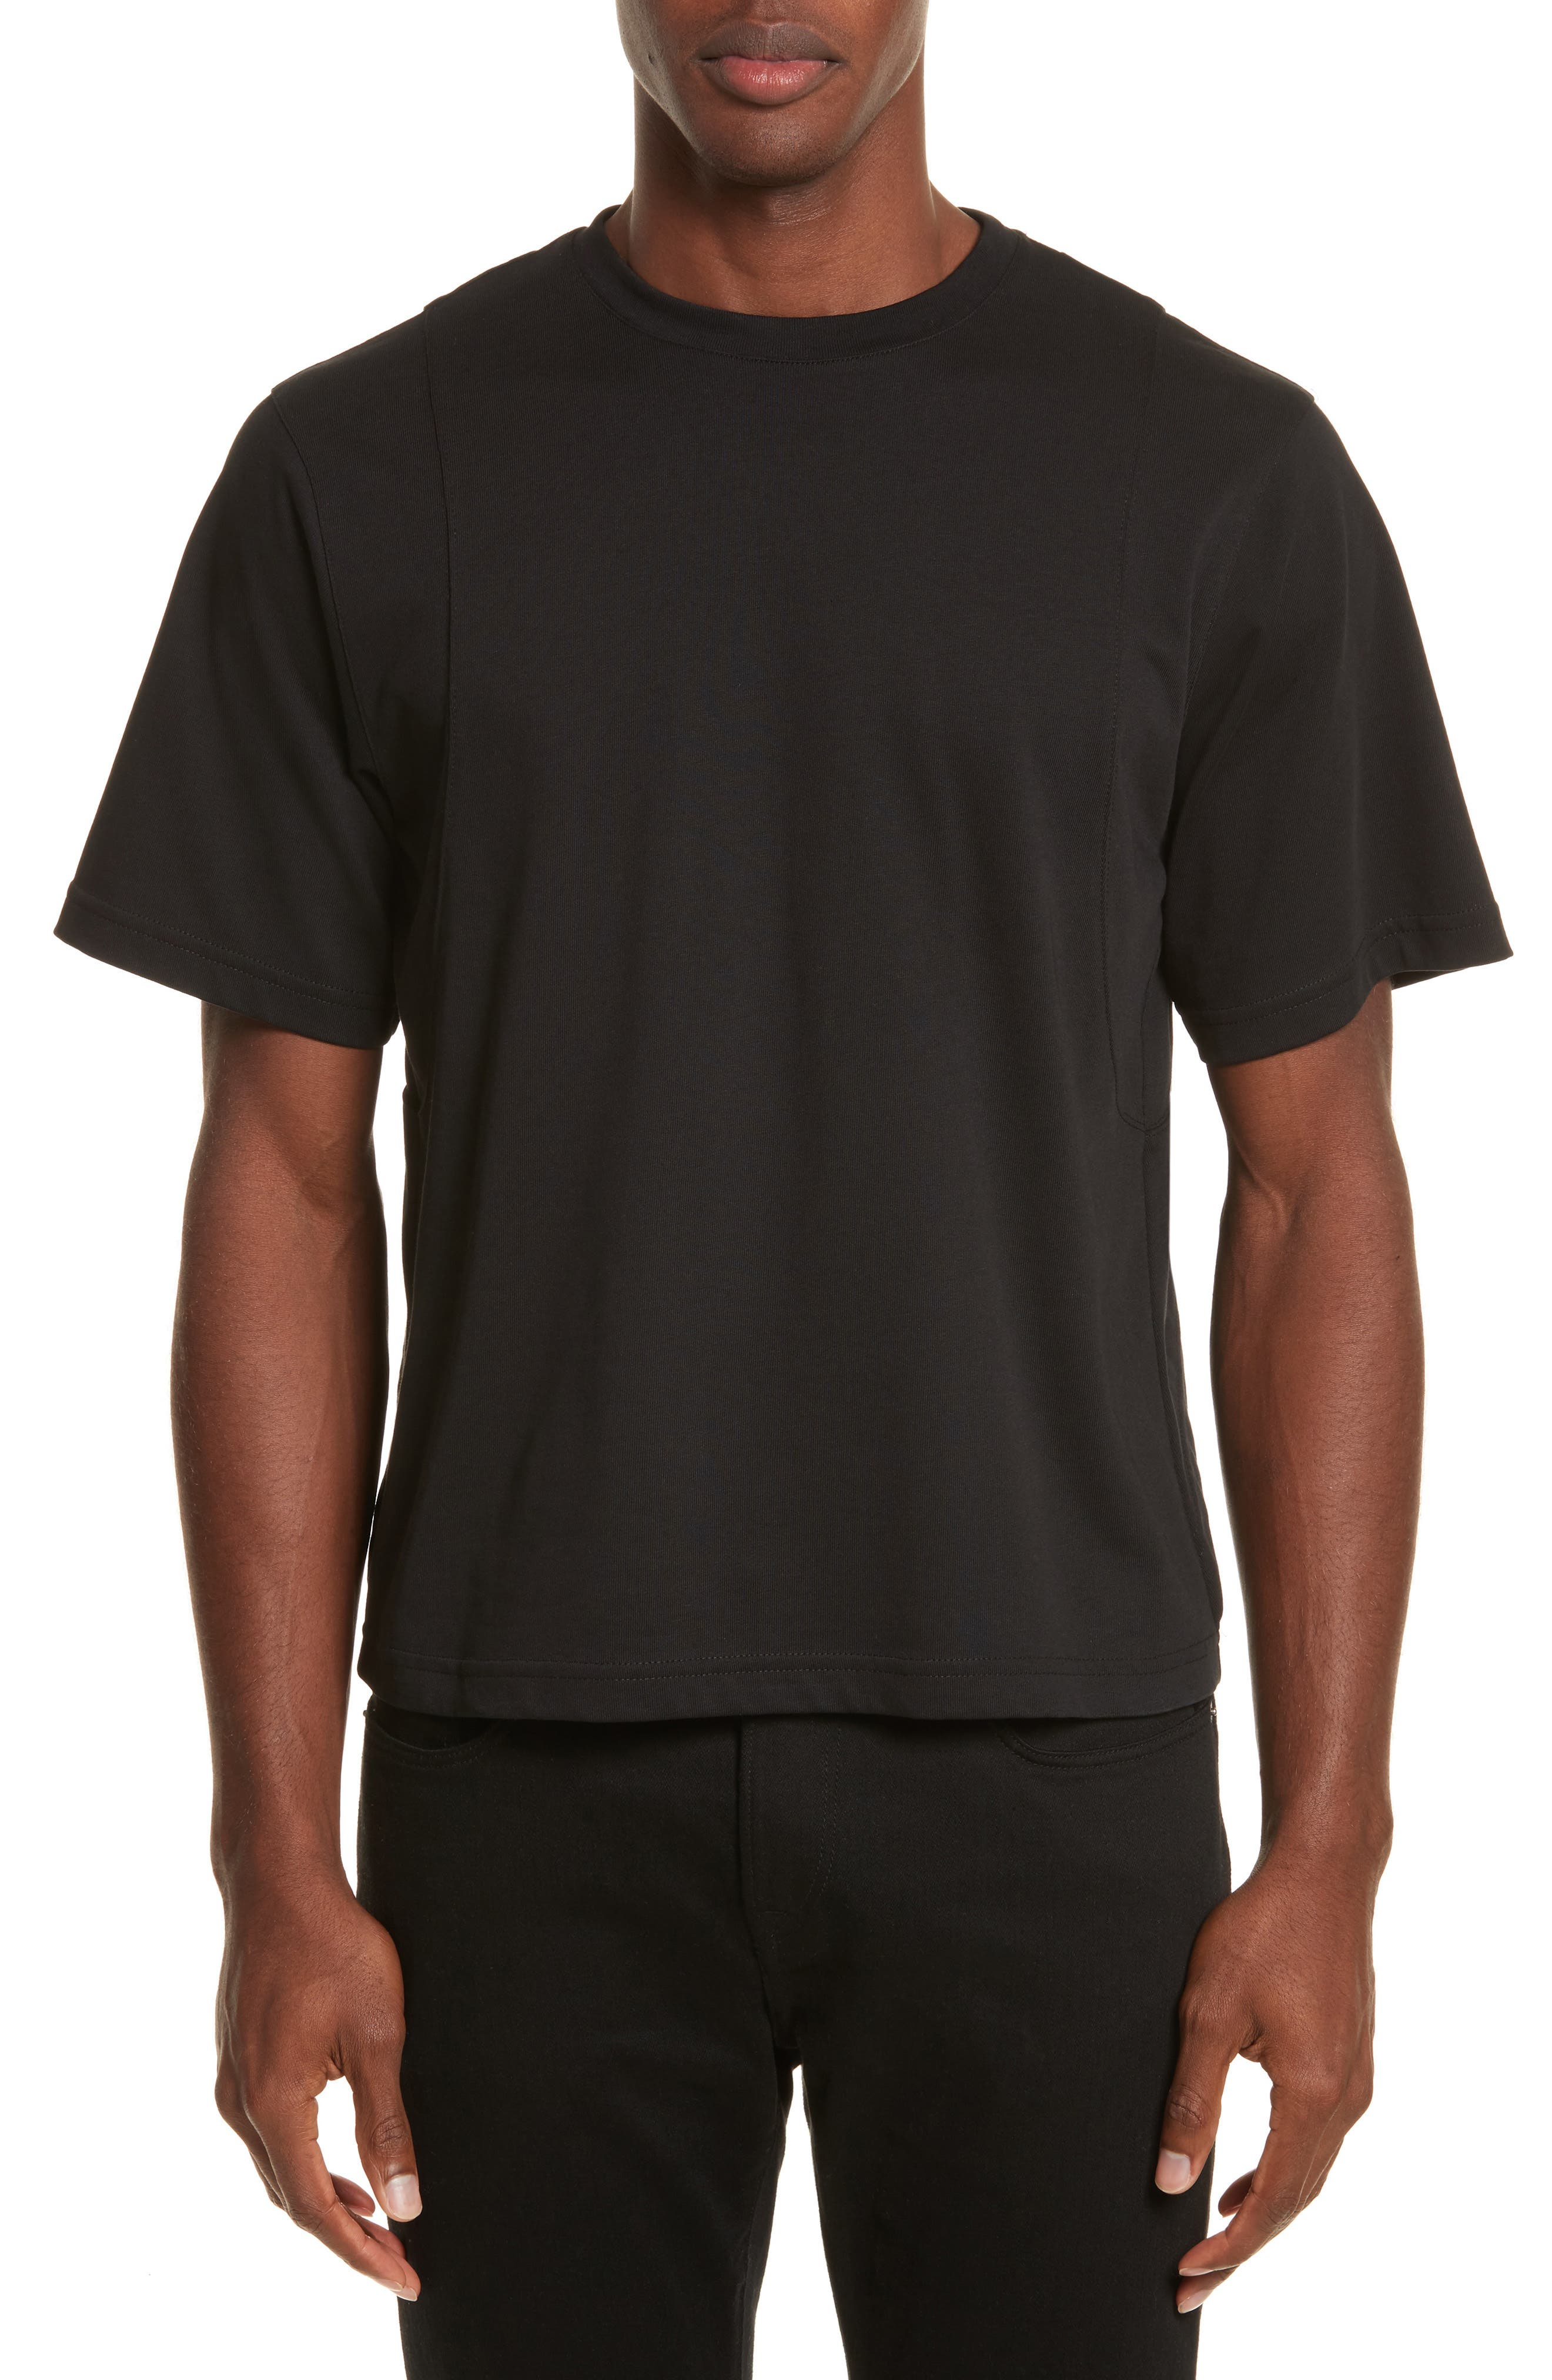 Alternate Image 1 Selected - Helmut Lang Drape Military Jersey T-Shirt